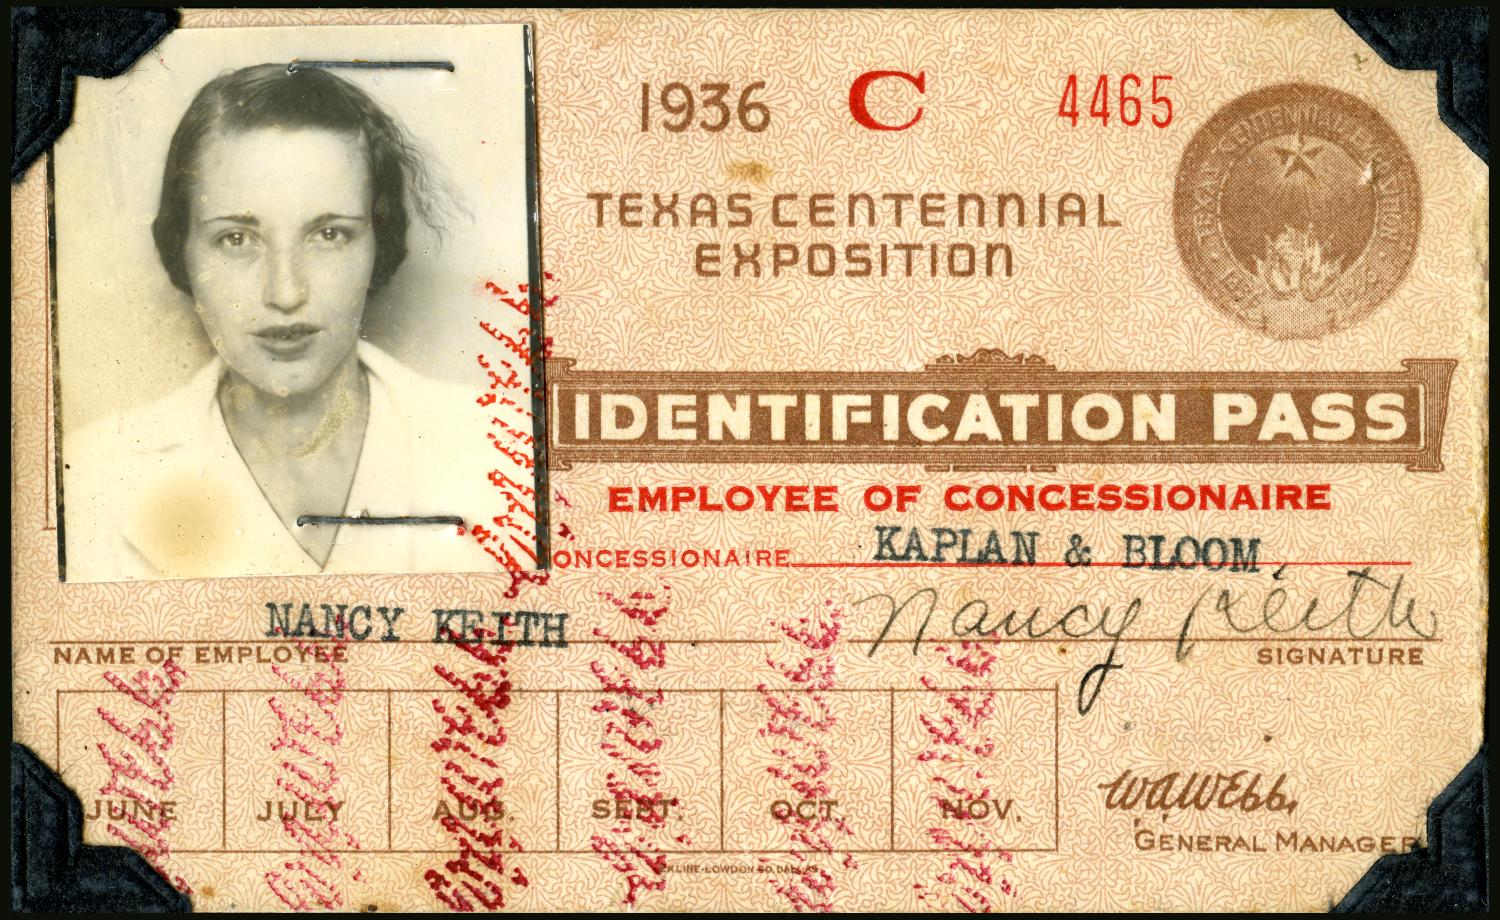 Nancy Keith's Identification Card                                                                                                      [Sequence #]: 1 of 1